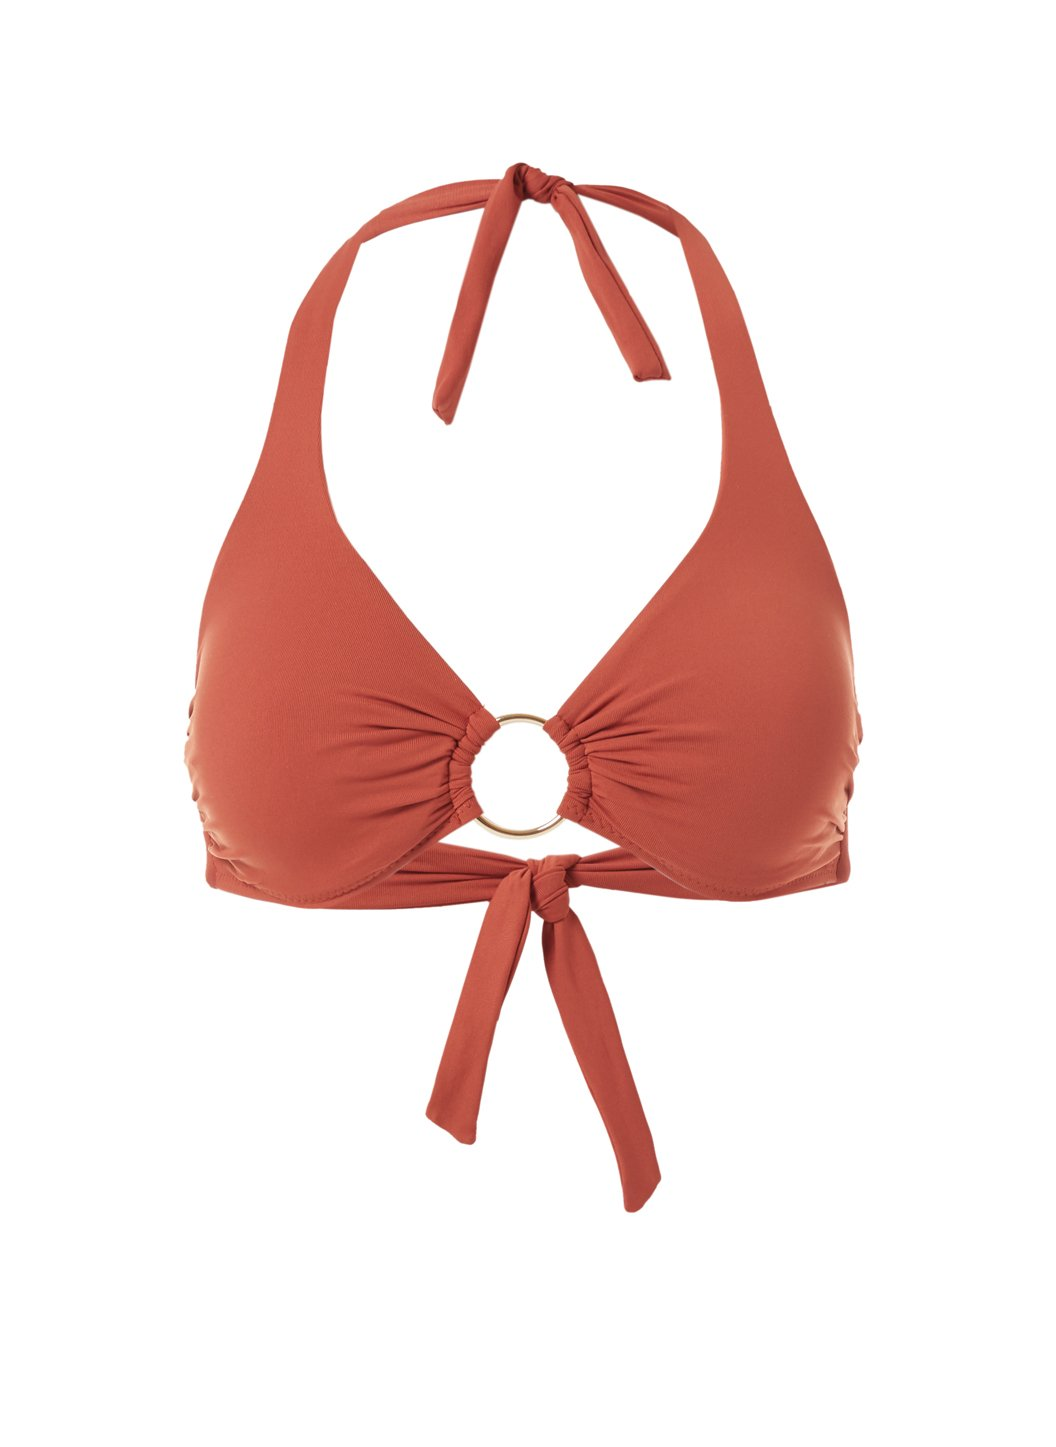 Brussels Cinnamon Halterneck Ring Supportive Bikini Top